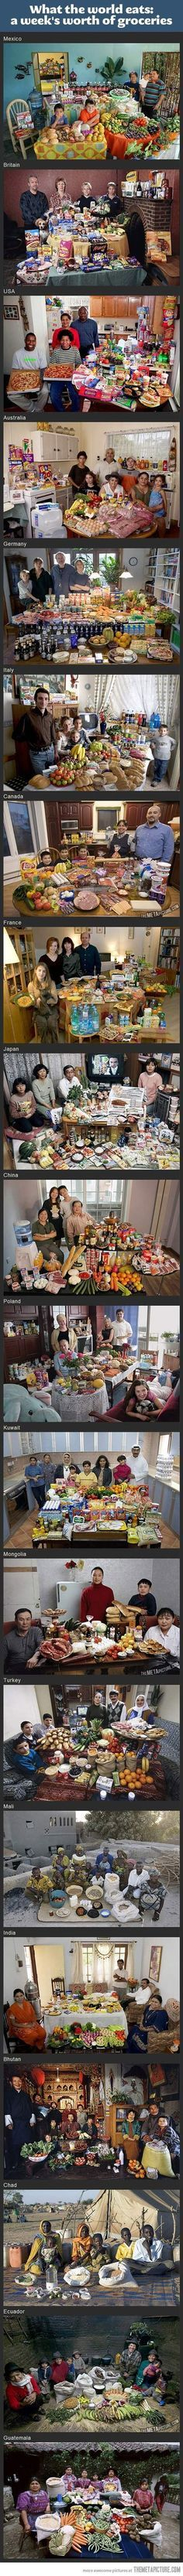 20 families around the world show what they eat on one week. Countries include: Mexico, Great Britain, US, Australia, Germany, Italy, Canada, France, Japan, China, Poland, Kuwait, Mongolia, Turkey, Mali, India, Bhutan, Chad, Ecuador, Guatemala.